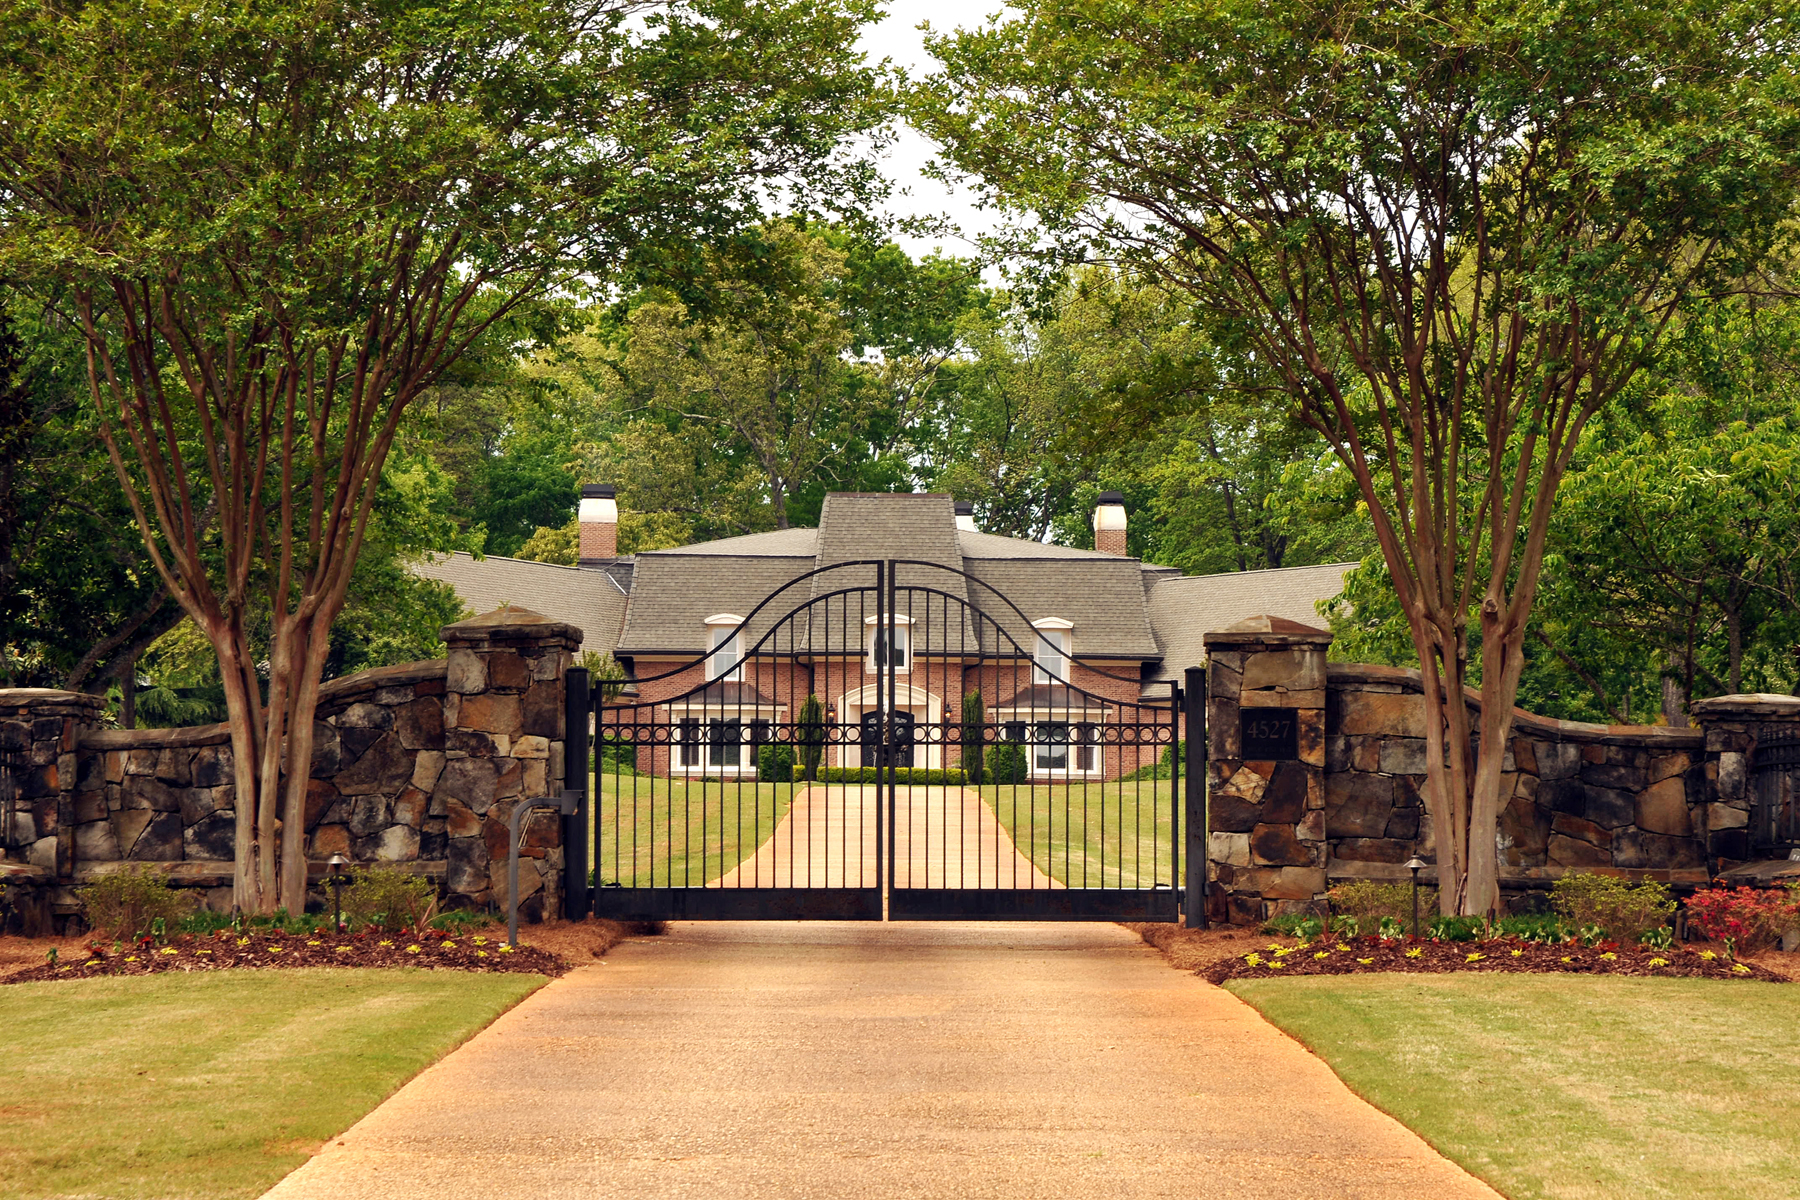 단독 가정 주택 용 매매 에 Glorious European Estate In Gwinnett County 4527 Shiloh Ridge Trail Snellville, 조지아 30039 미국